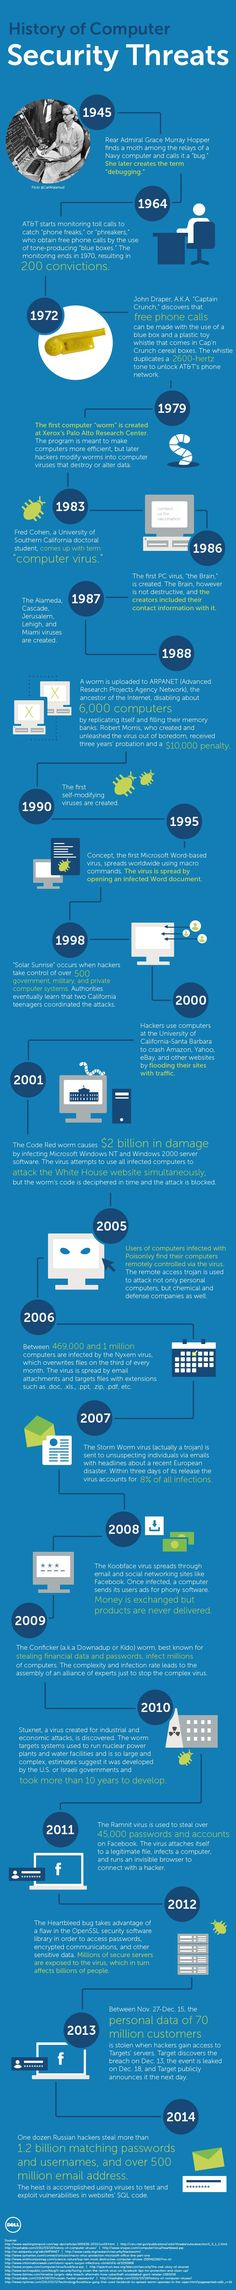 History of Computer Security Threats - Do you fancy an infographic? There are a lot of them online, but if you want your own please visit http://www.linfografico.com/prezzi/ Online girano molte infografiche, se ne vuoi realizzare una tutta tua visita http://www.linfografico.com/prezzi/